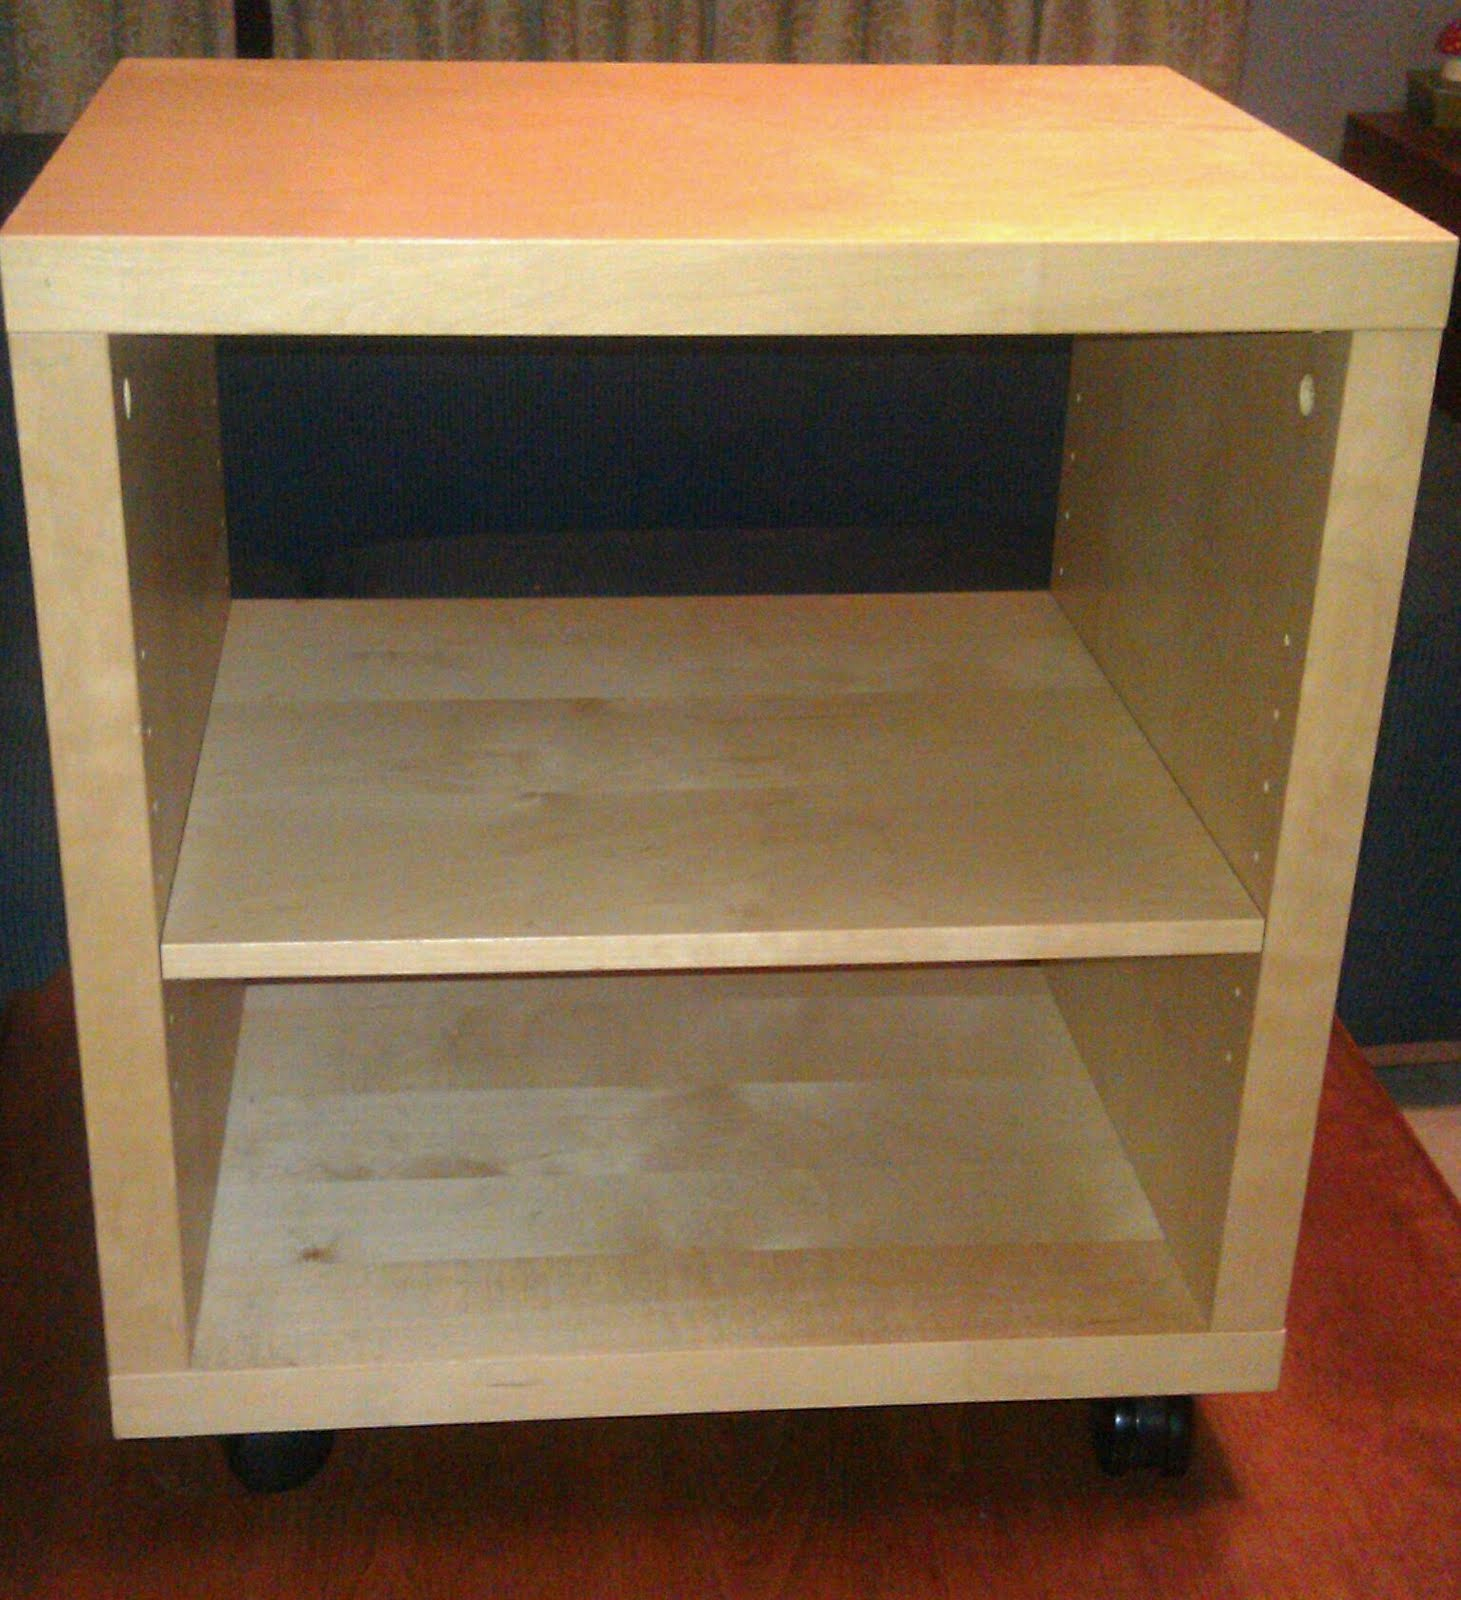 Wooden bedside table design - The Stacker Bedside Table Hack